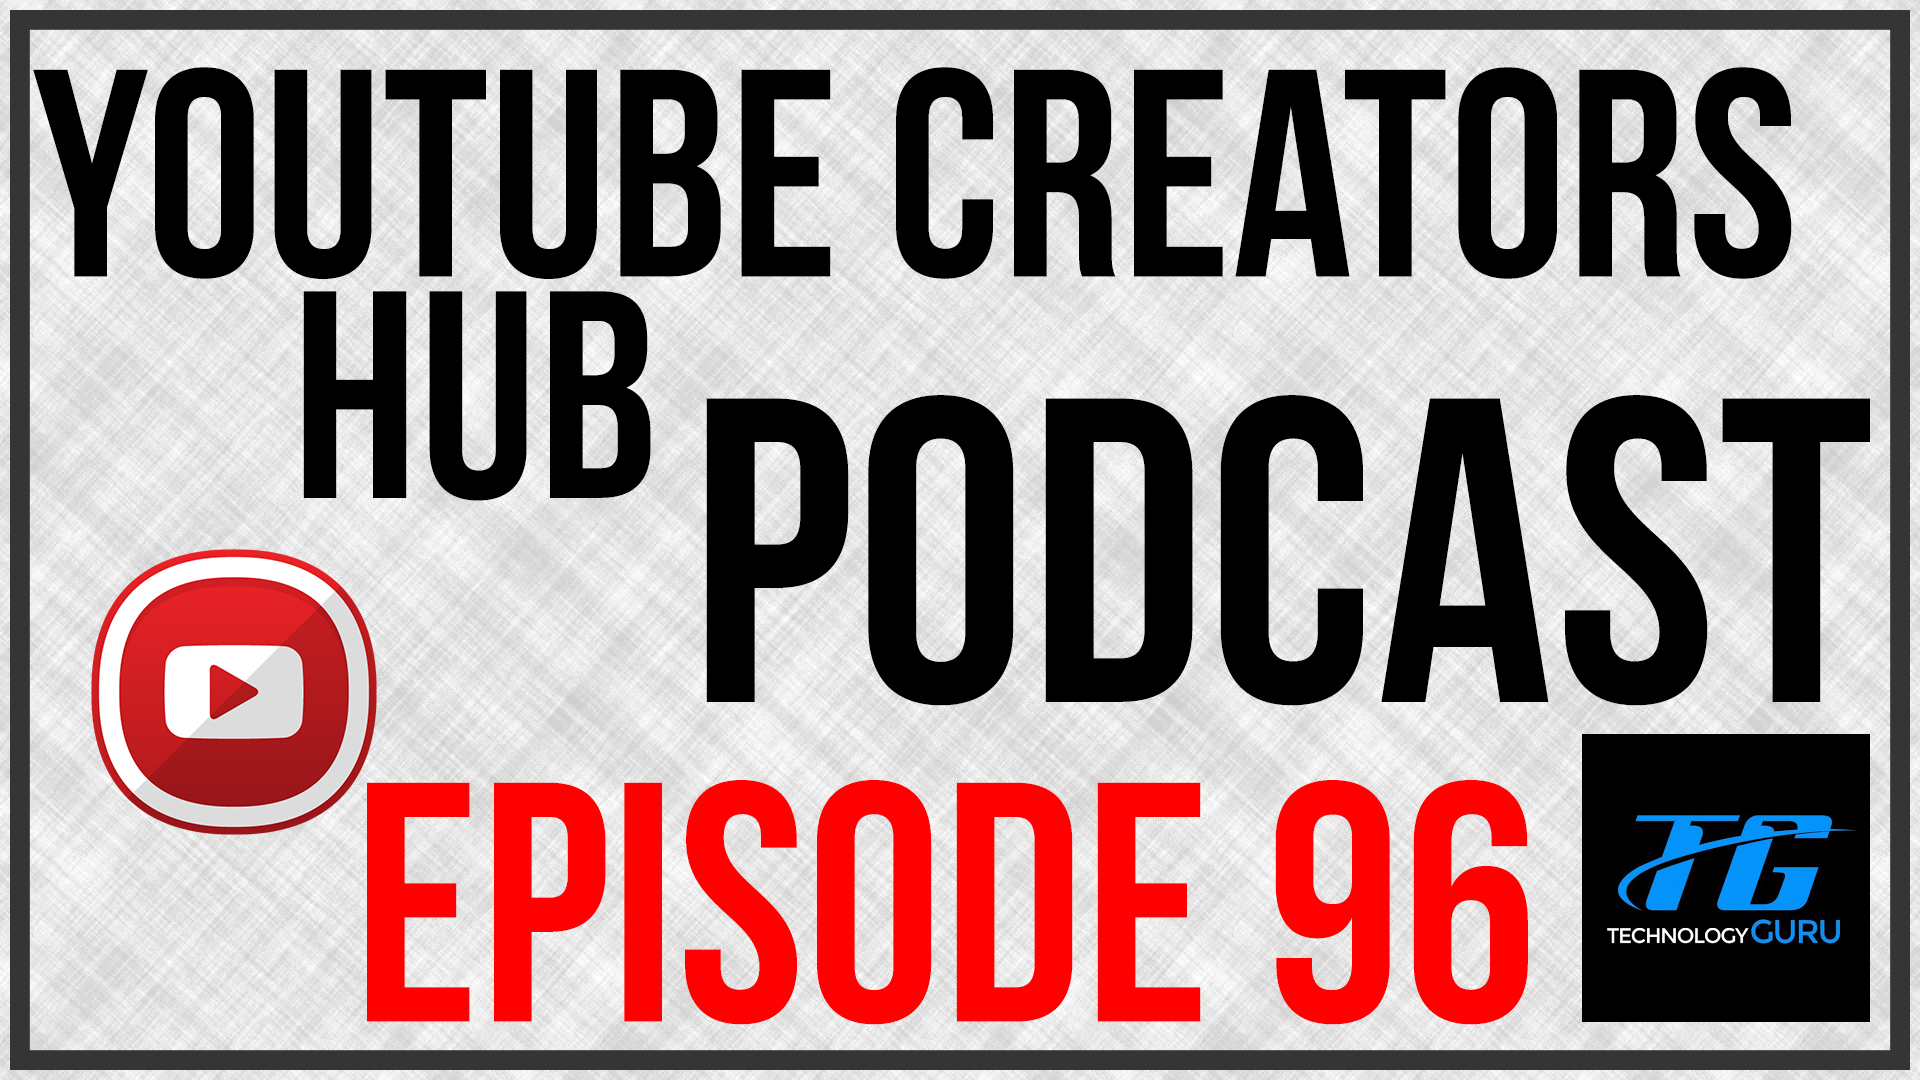 YouTube Creators Hub Episode 96